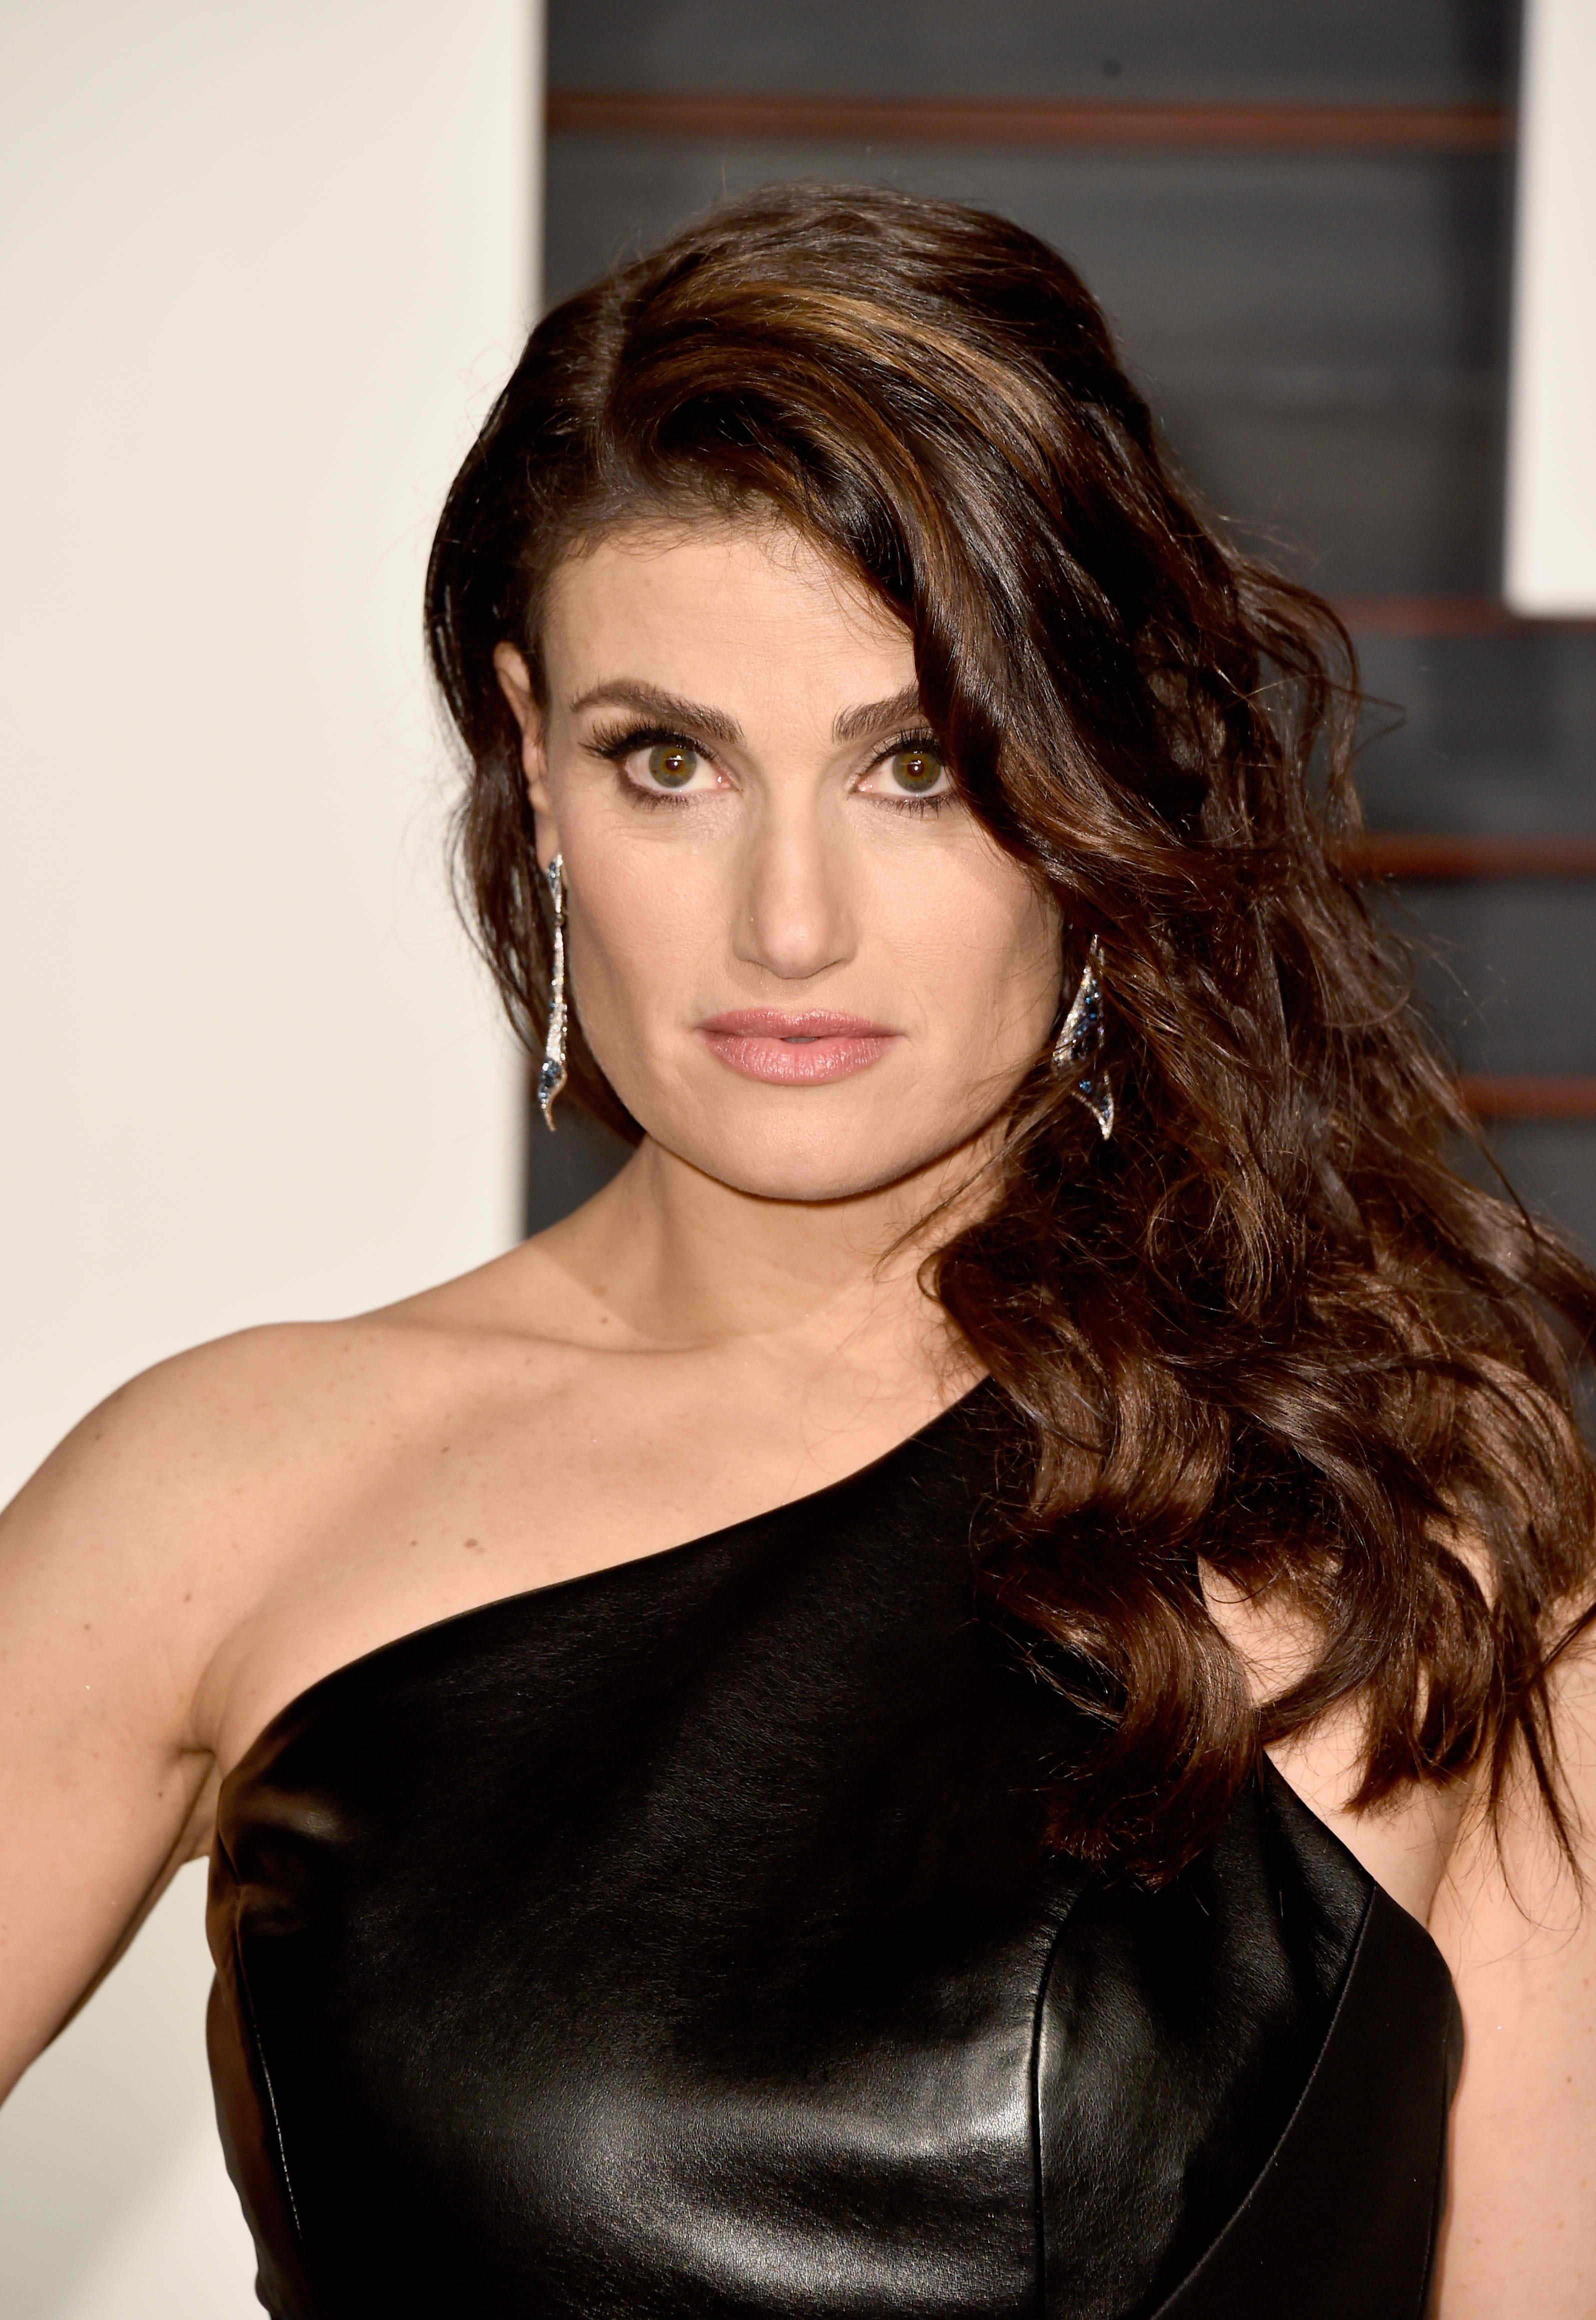 idina menzel son 2017 - photo #29